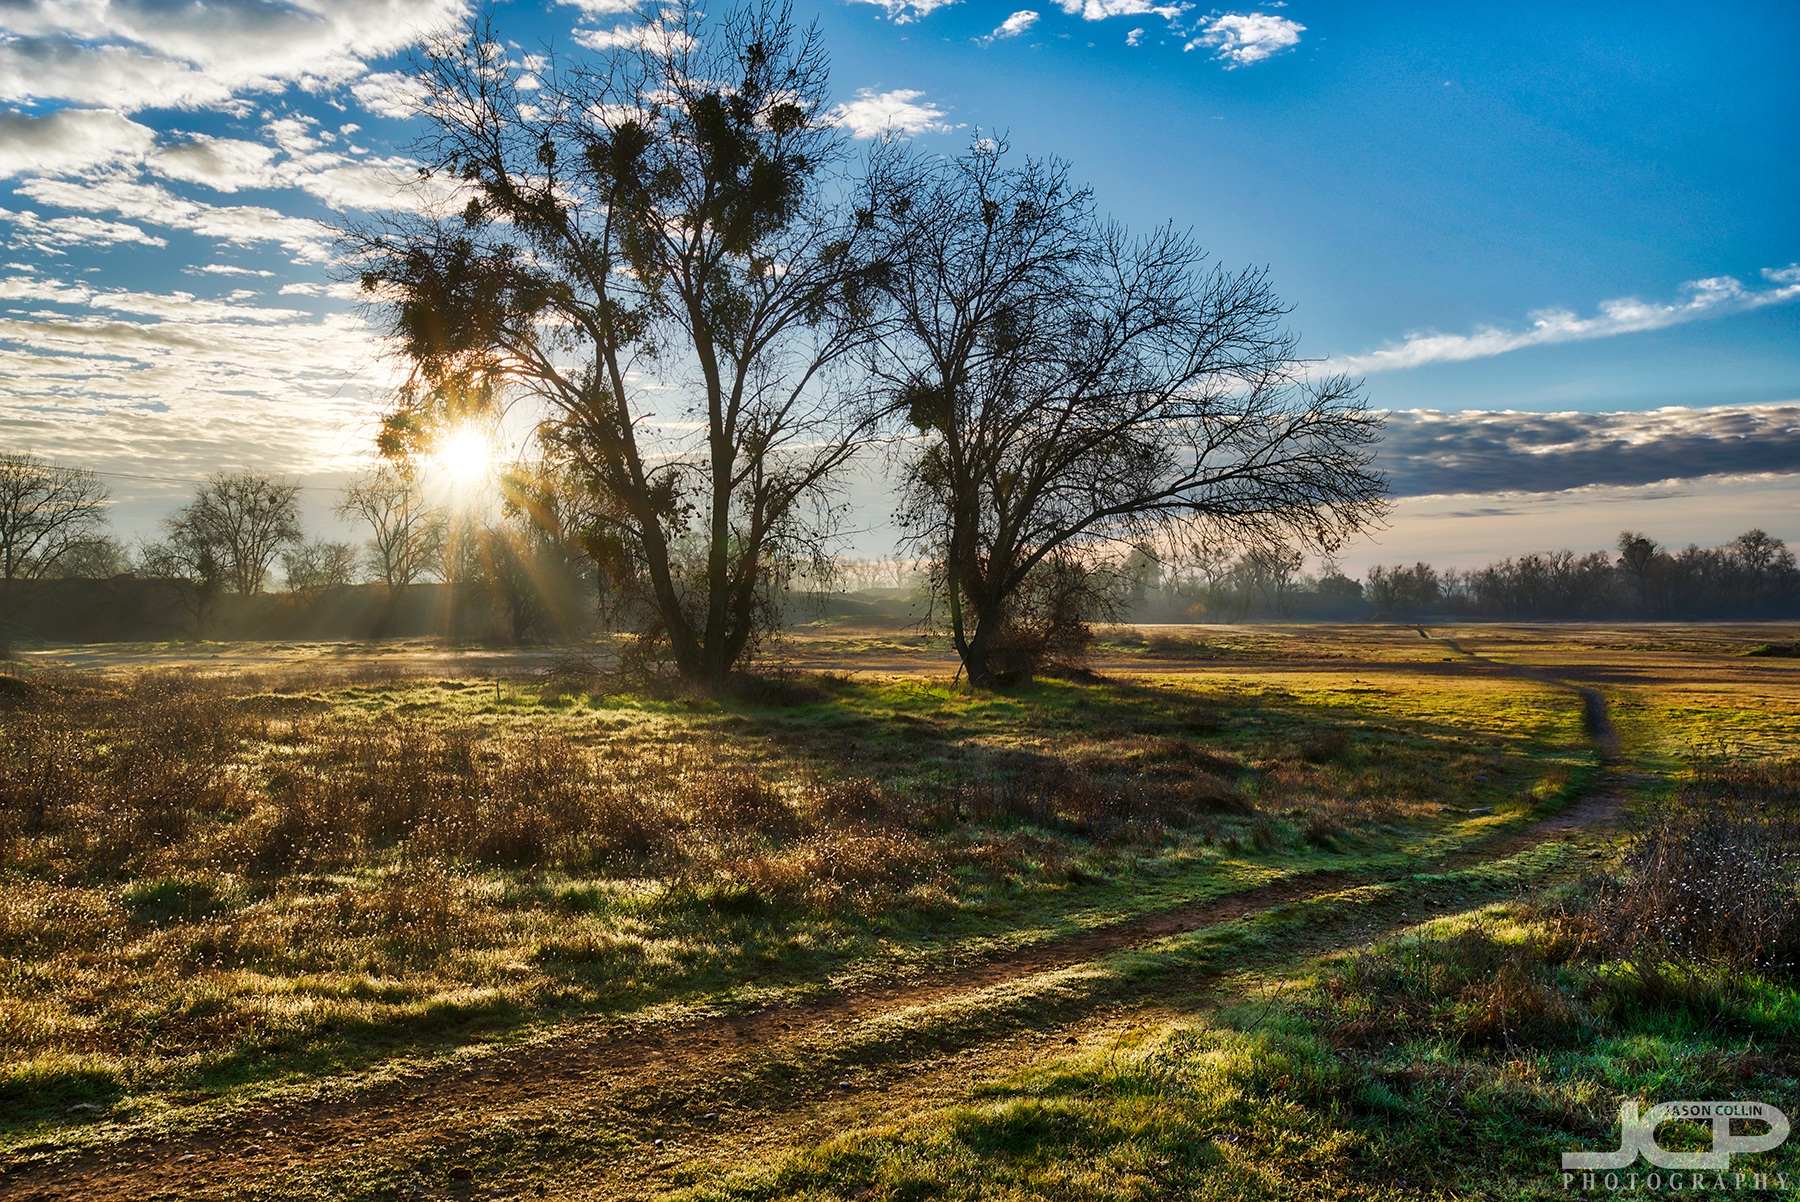 Paths behind horse stables in Sacramento, California during the first sunrise of 2018 - Nikon D750 with Tamron 15-30mm f/2.8 SP tripod mounted 7-bracket HDR